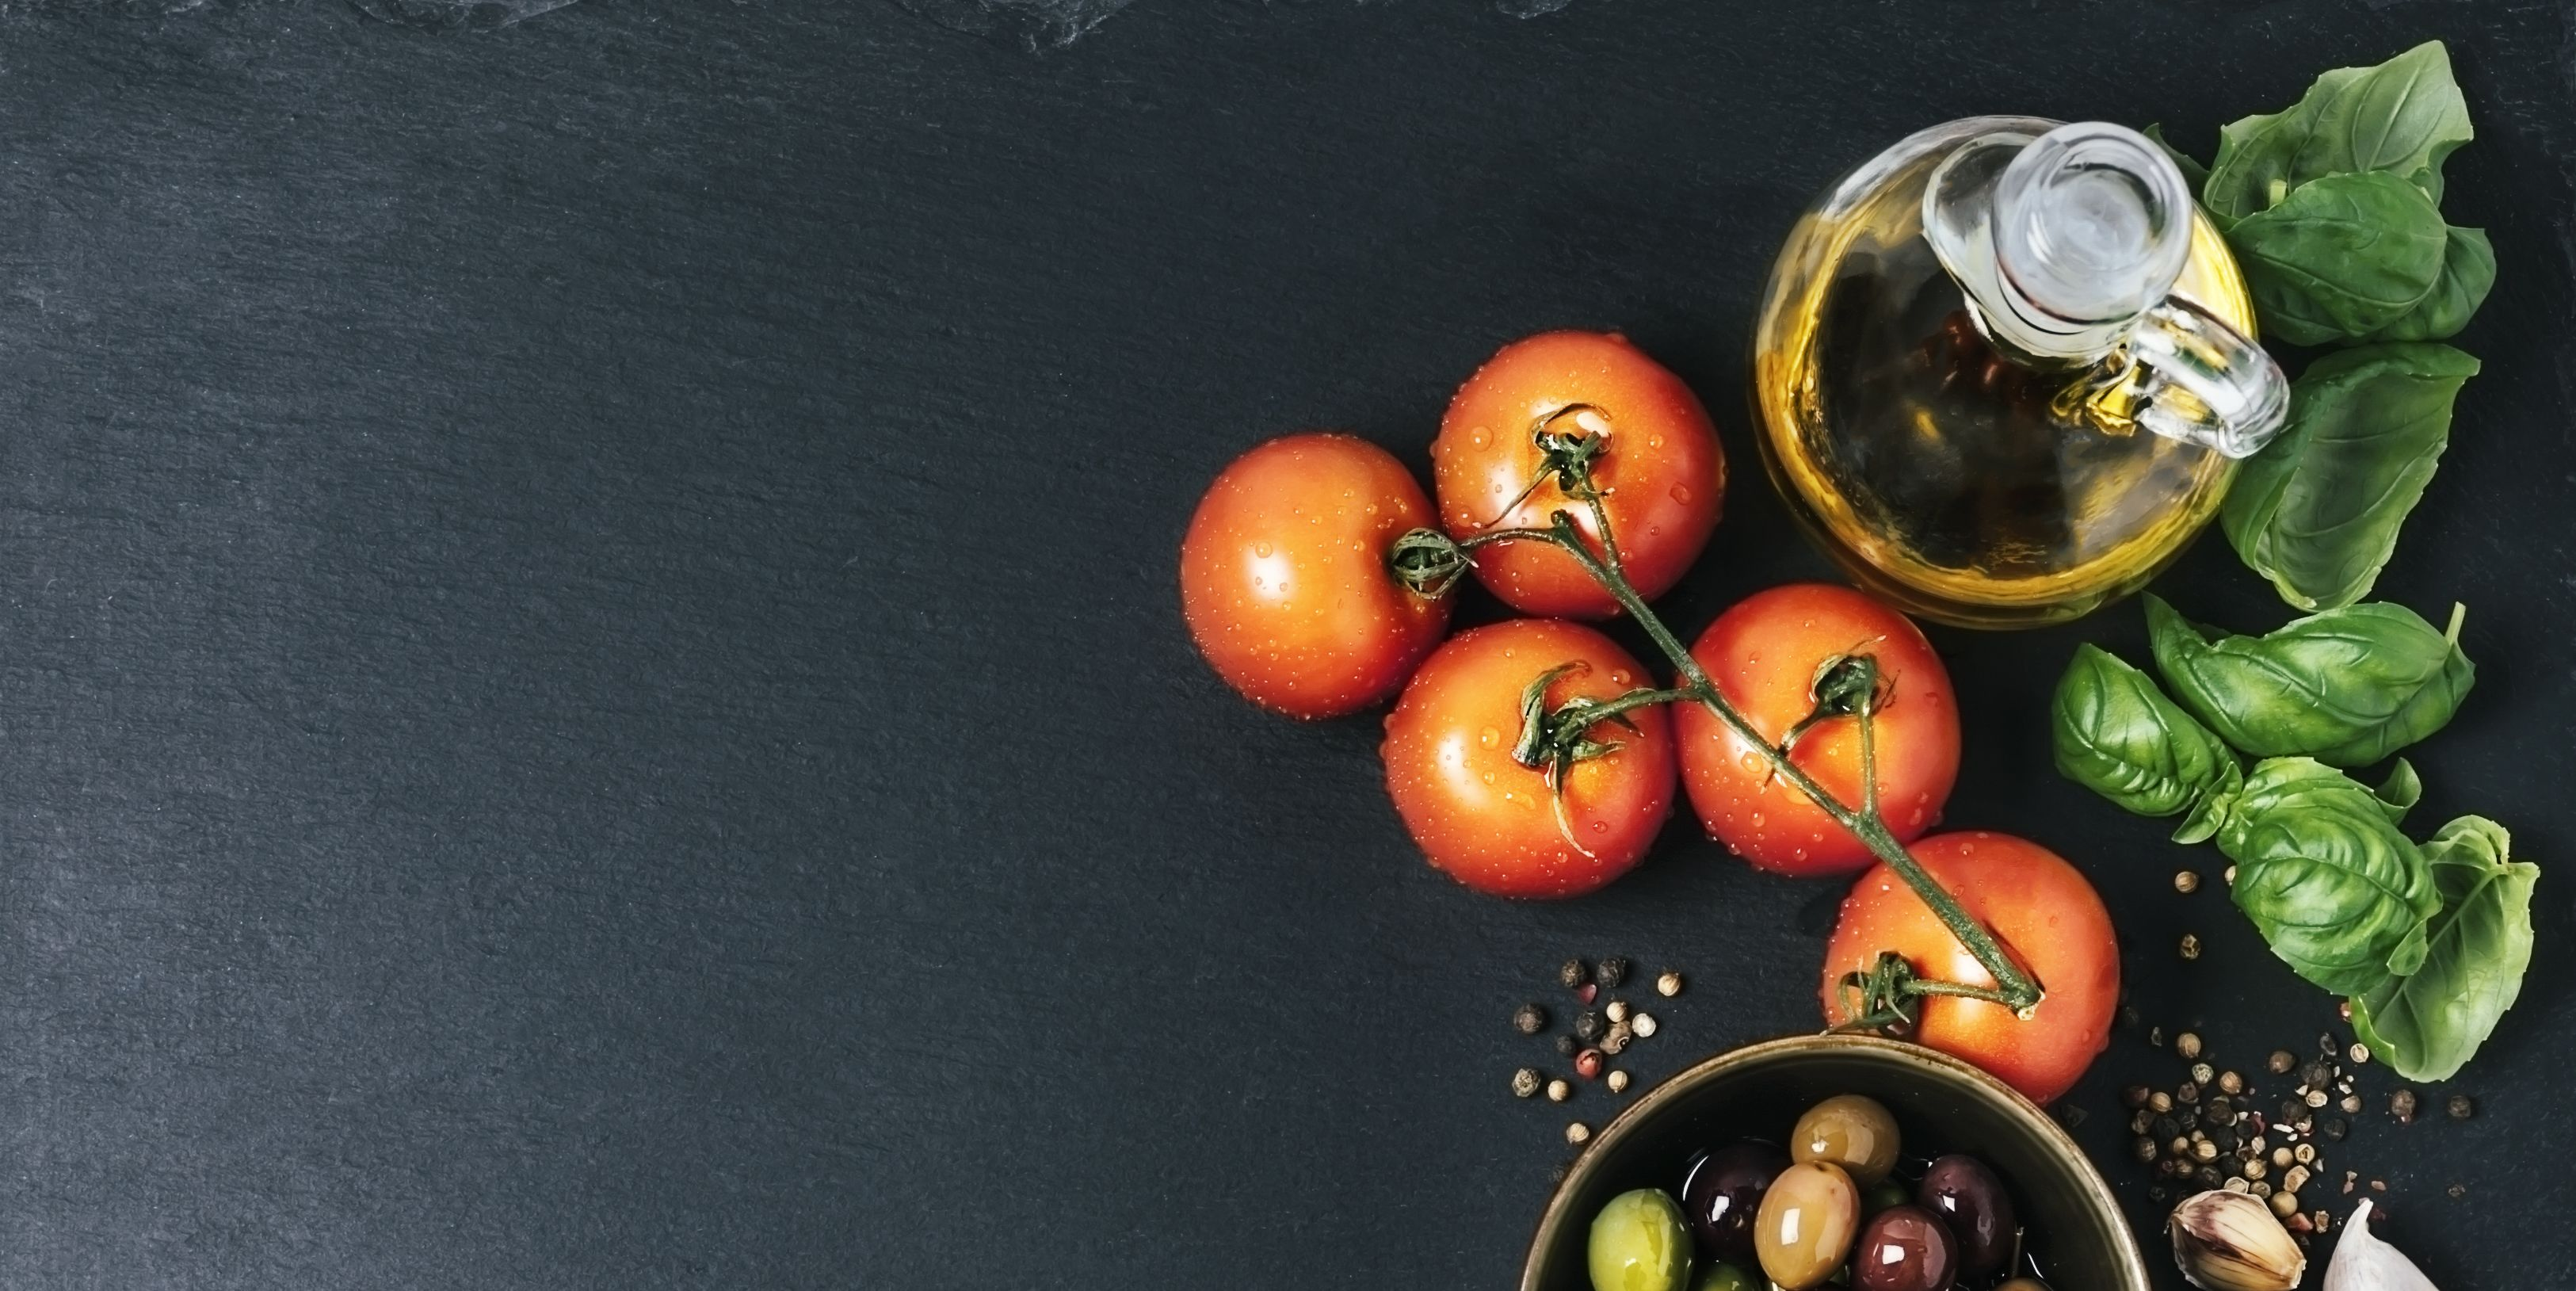 Ingredients (tomatoes, garlic, basil, olive oil, and spices)